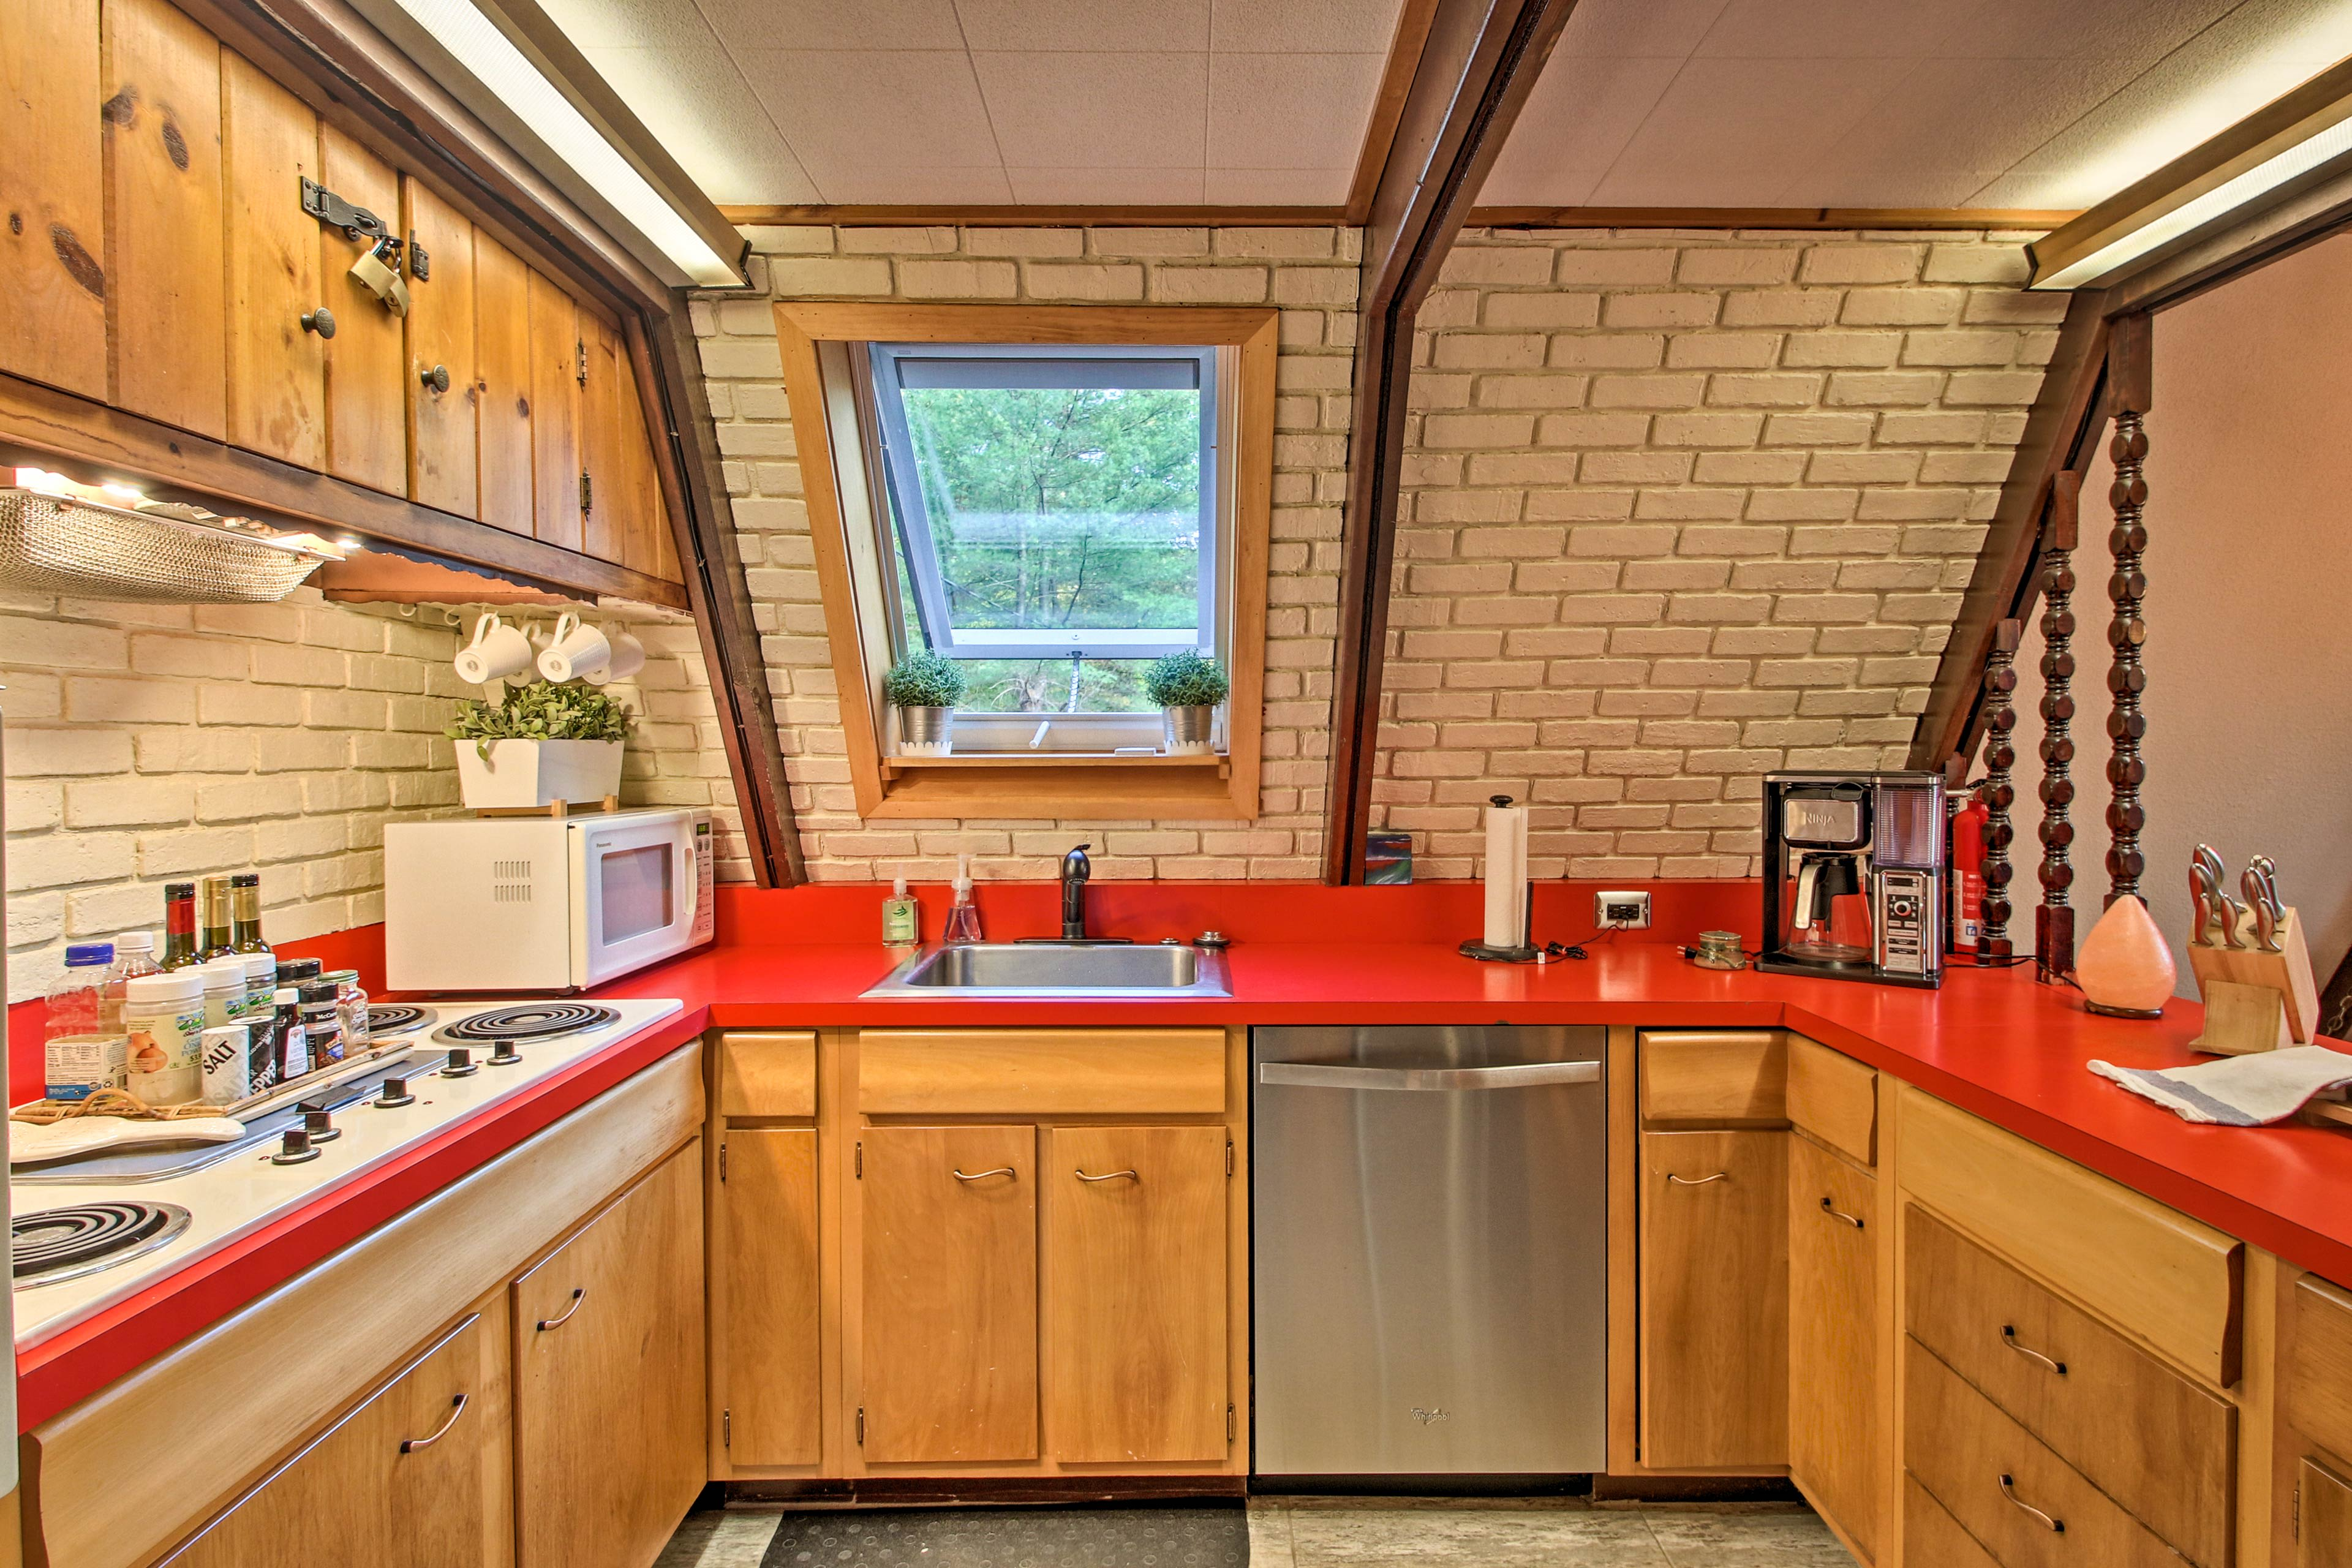 The exposed brick gives the kitchen a charming touch.